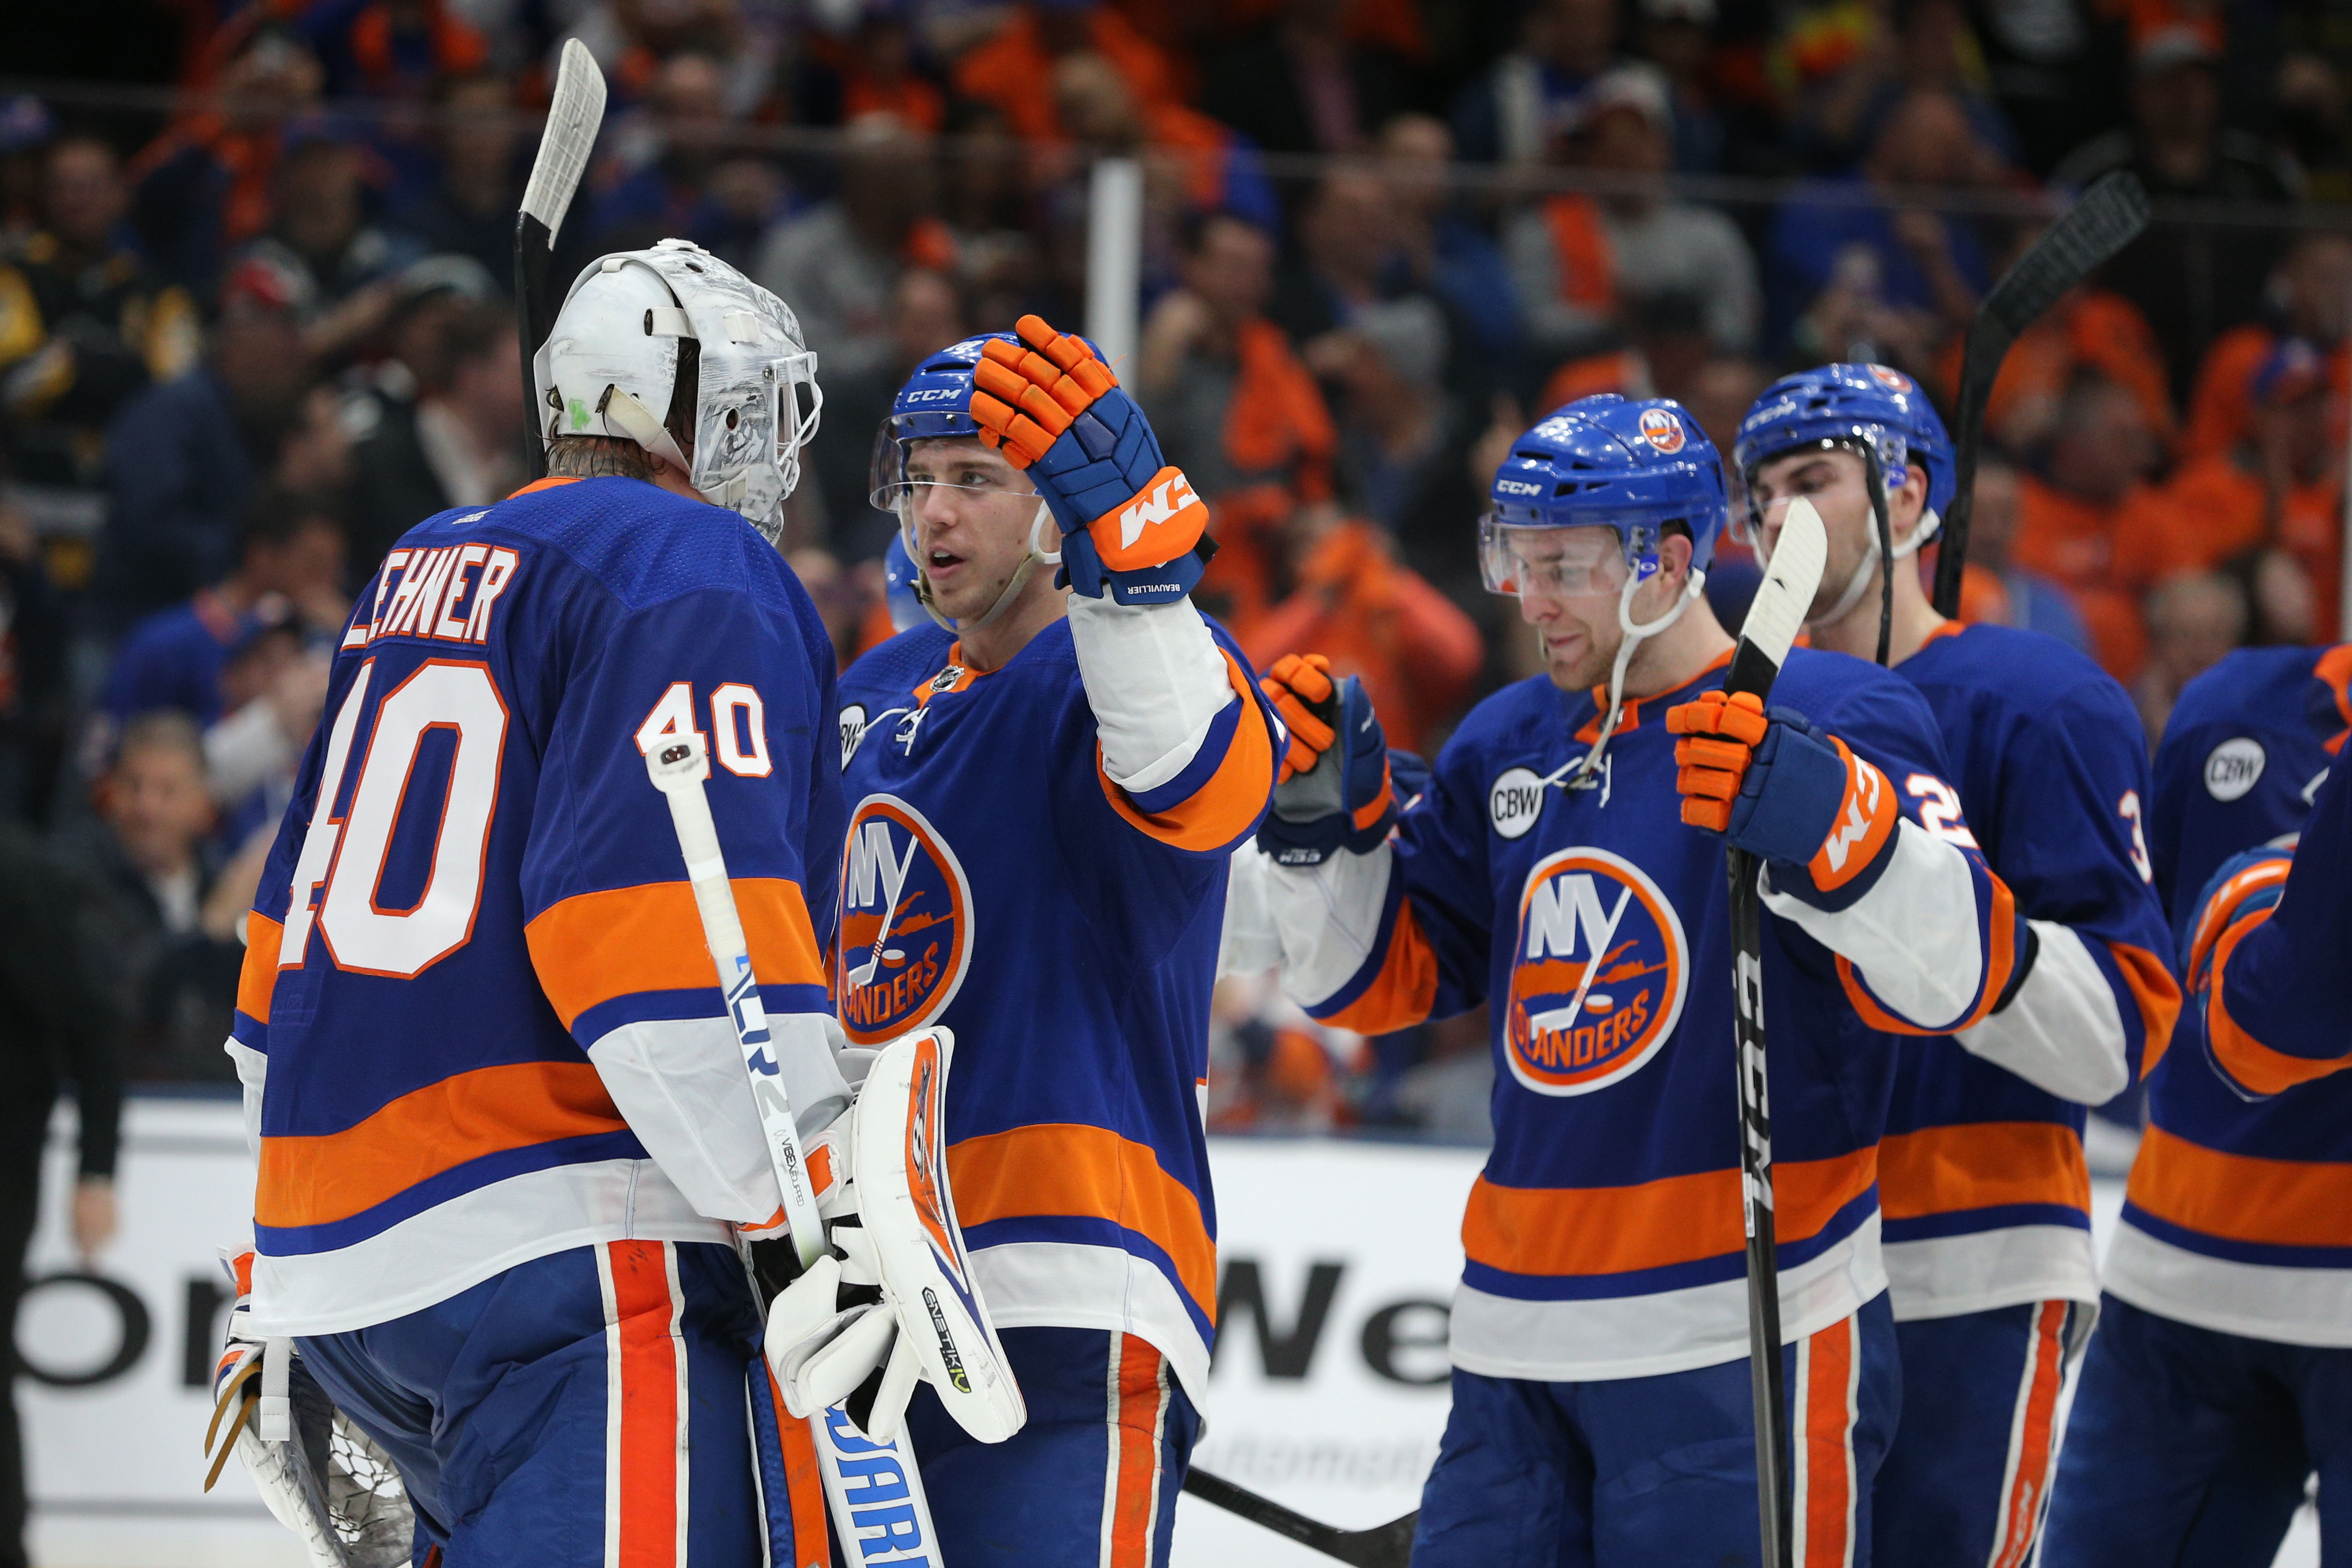 Apr 12, 2019; Uniondale, NY, USA; New York Islanders left wing Anthony Beauvillier (18) celebrates with goalie Robin Lehner (40) after defeating the Pittsburgh Penguins in game two of the first round of the 2019 Stanley Cup Playoffs at Nassau Veterans Memorial Coliseum. Mandatory Credit: Brad Penner-USA TODAY Sports